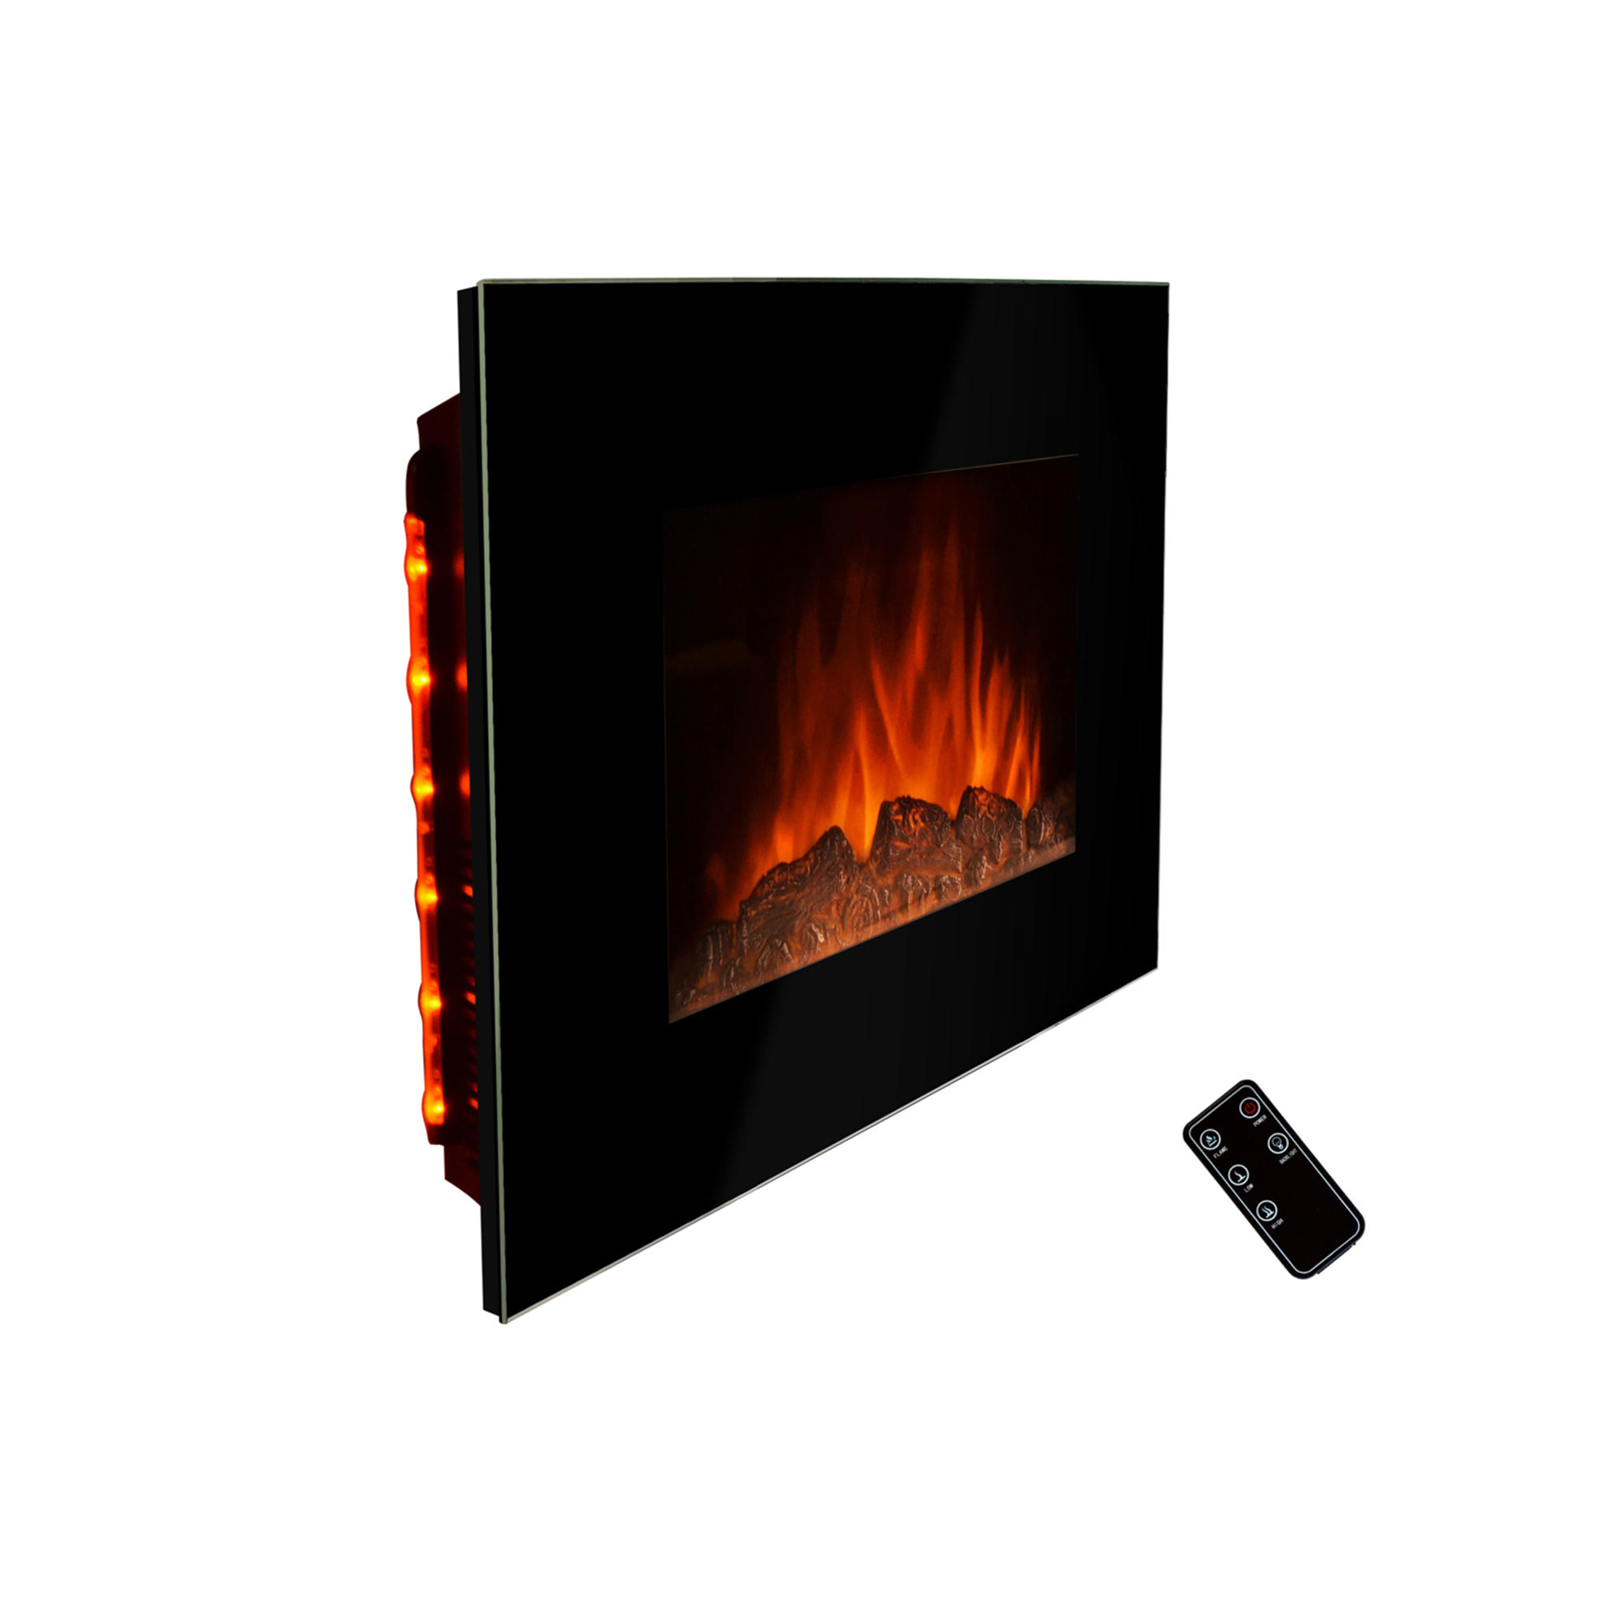 Wall Mount Fireplace Heaters Golden Vantage 36